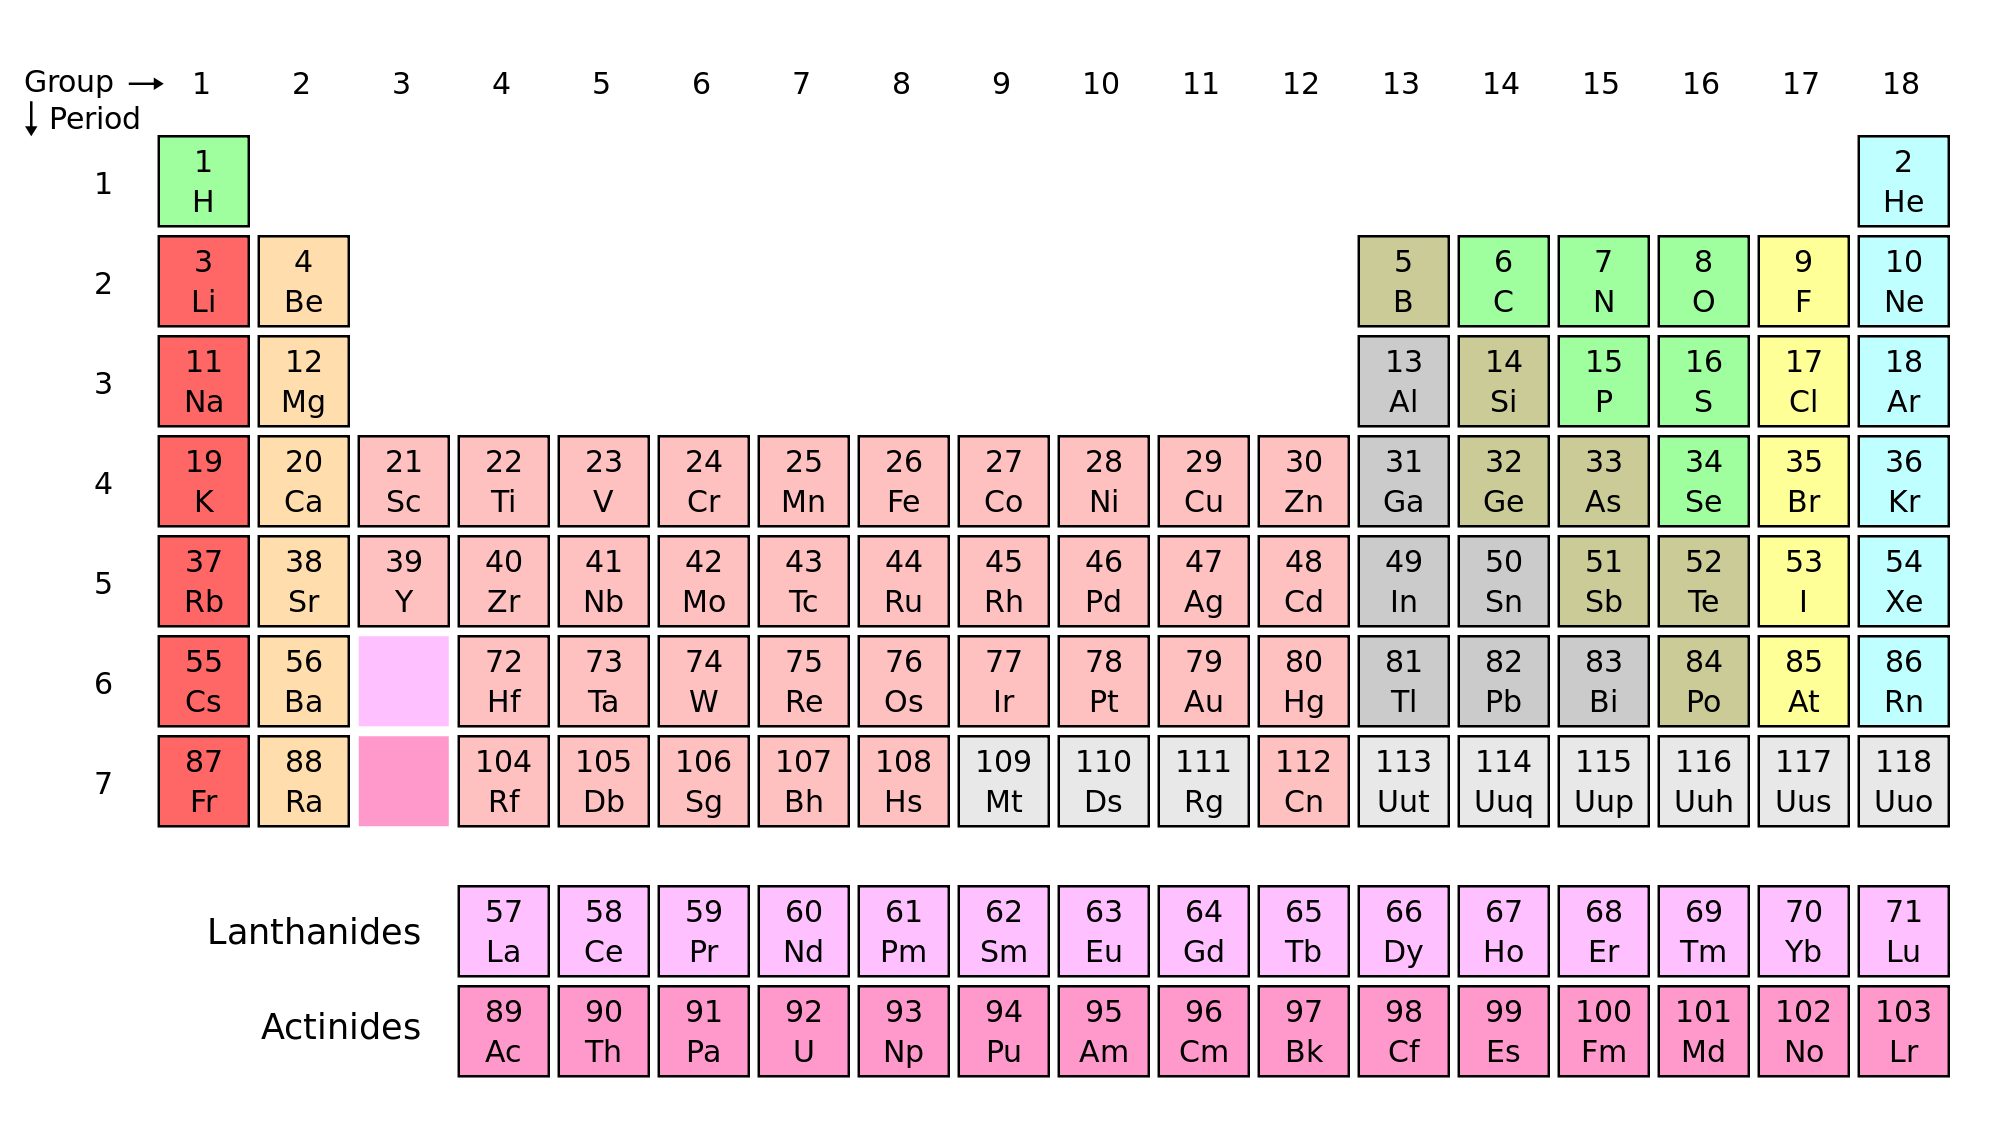 Periodic table of elements harmonia philosophica for Periodic table